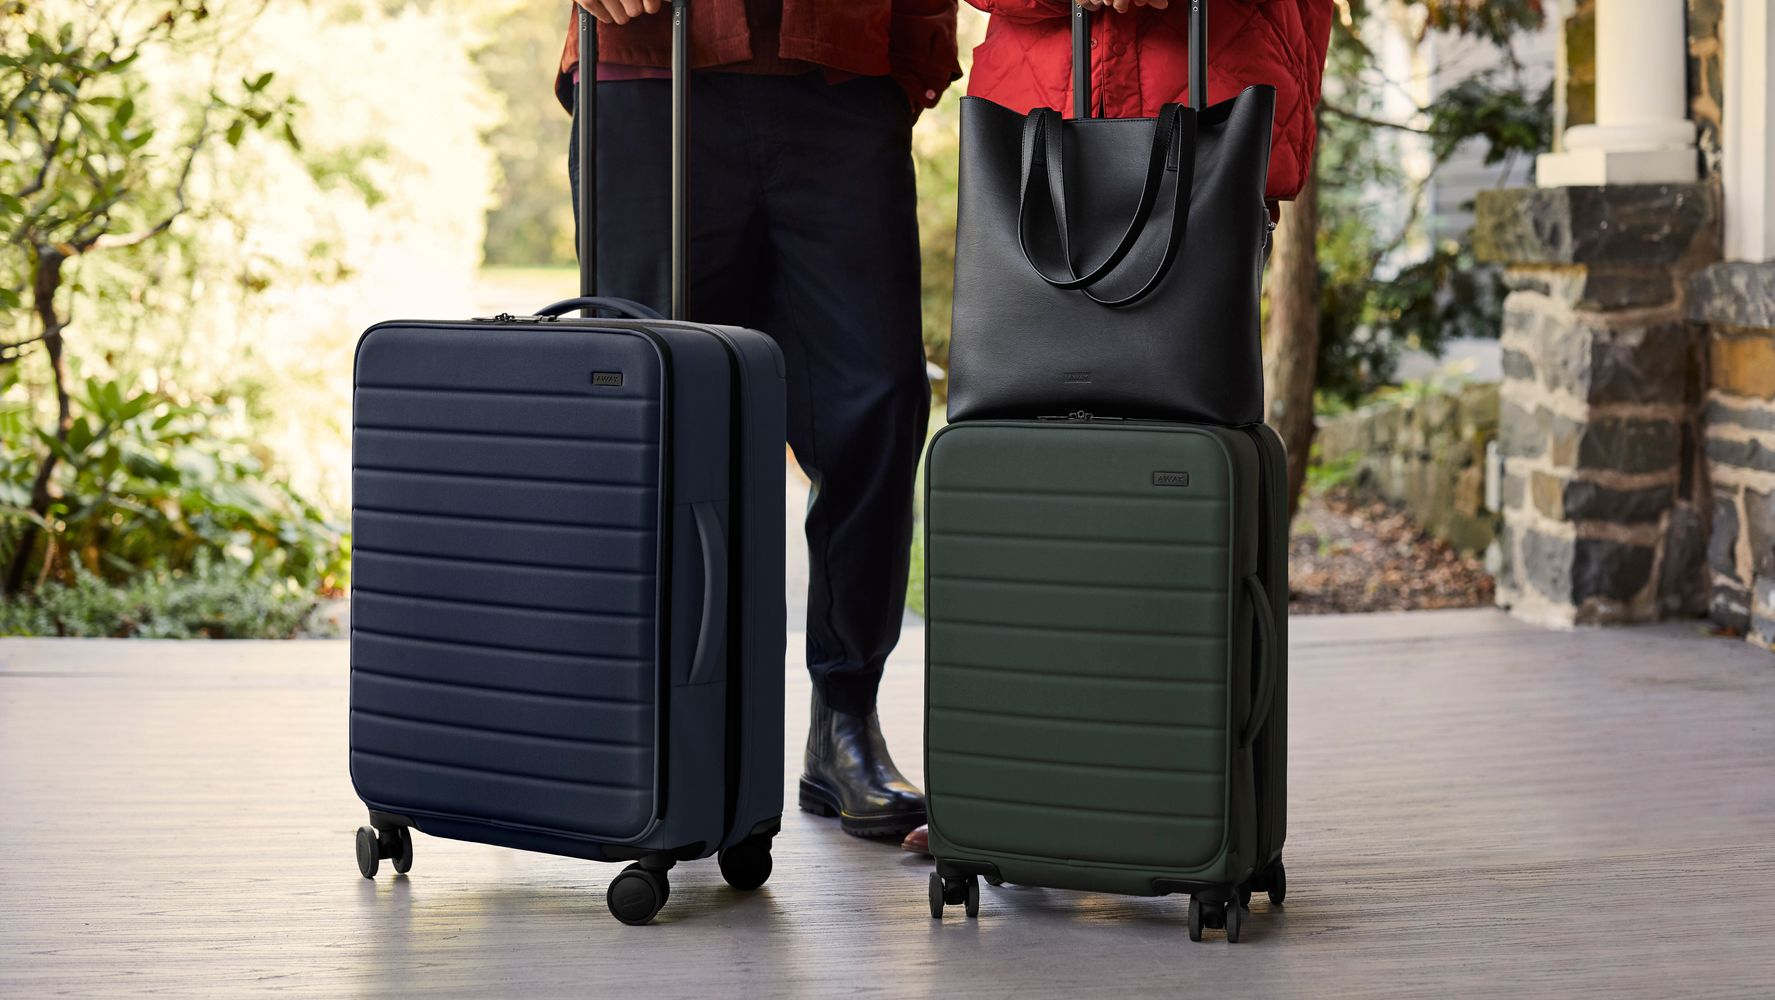 Away's New Soft-Sided Suitcases Are Made For Over-Packers